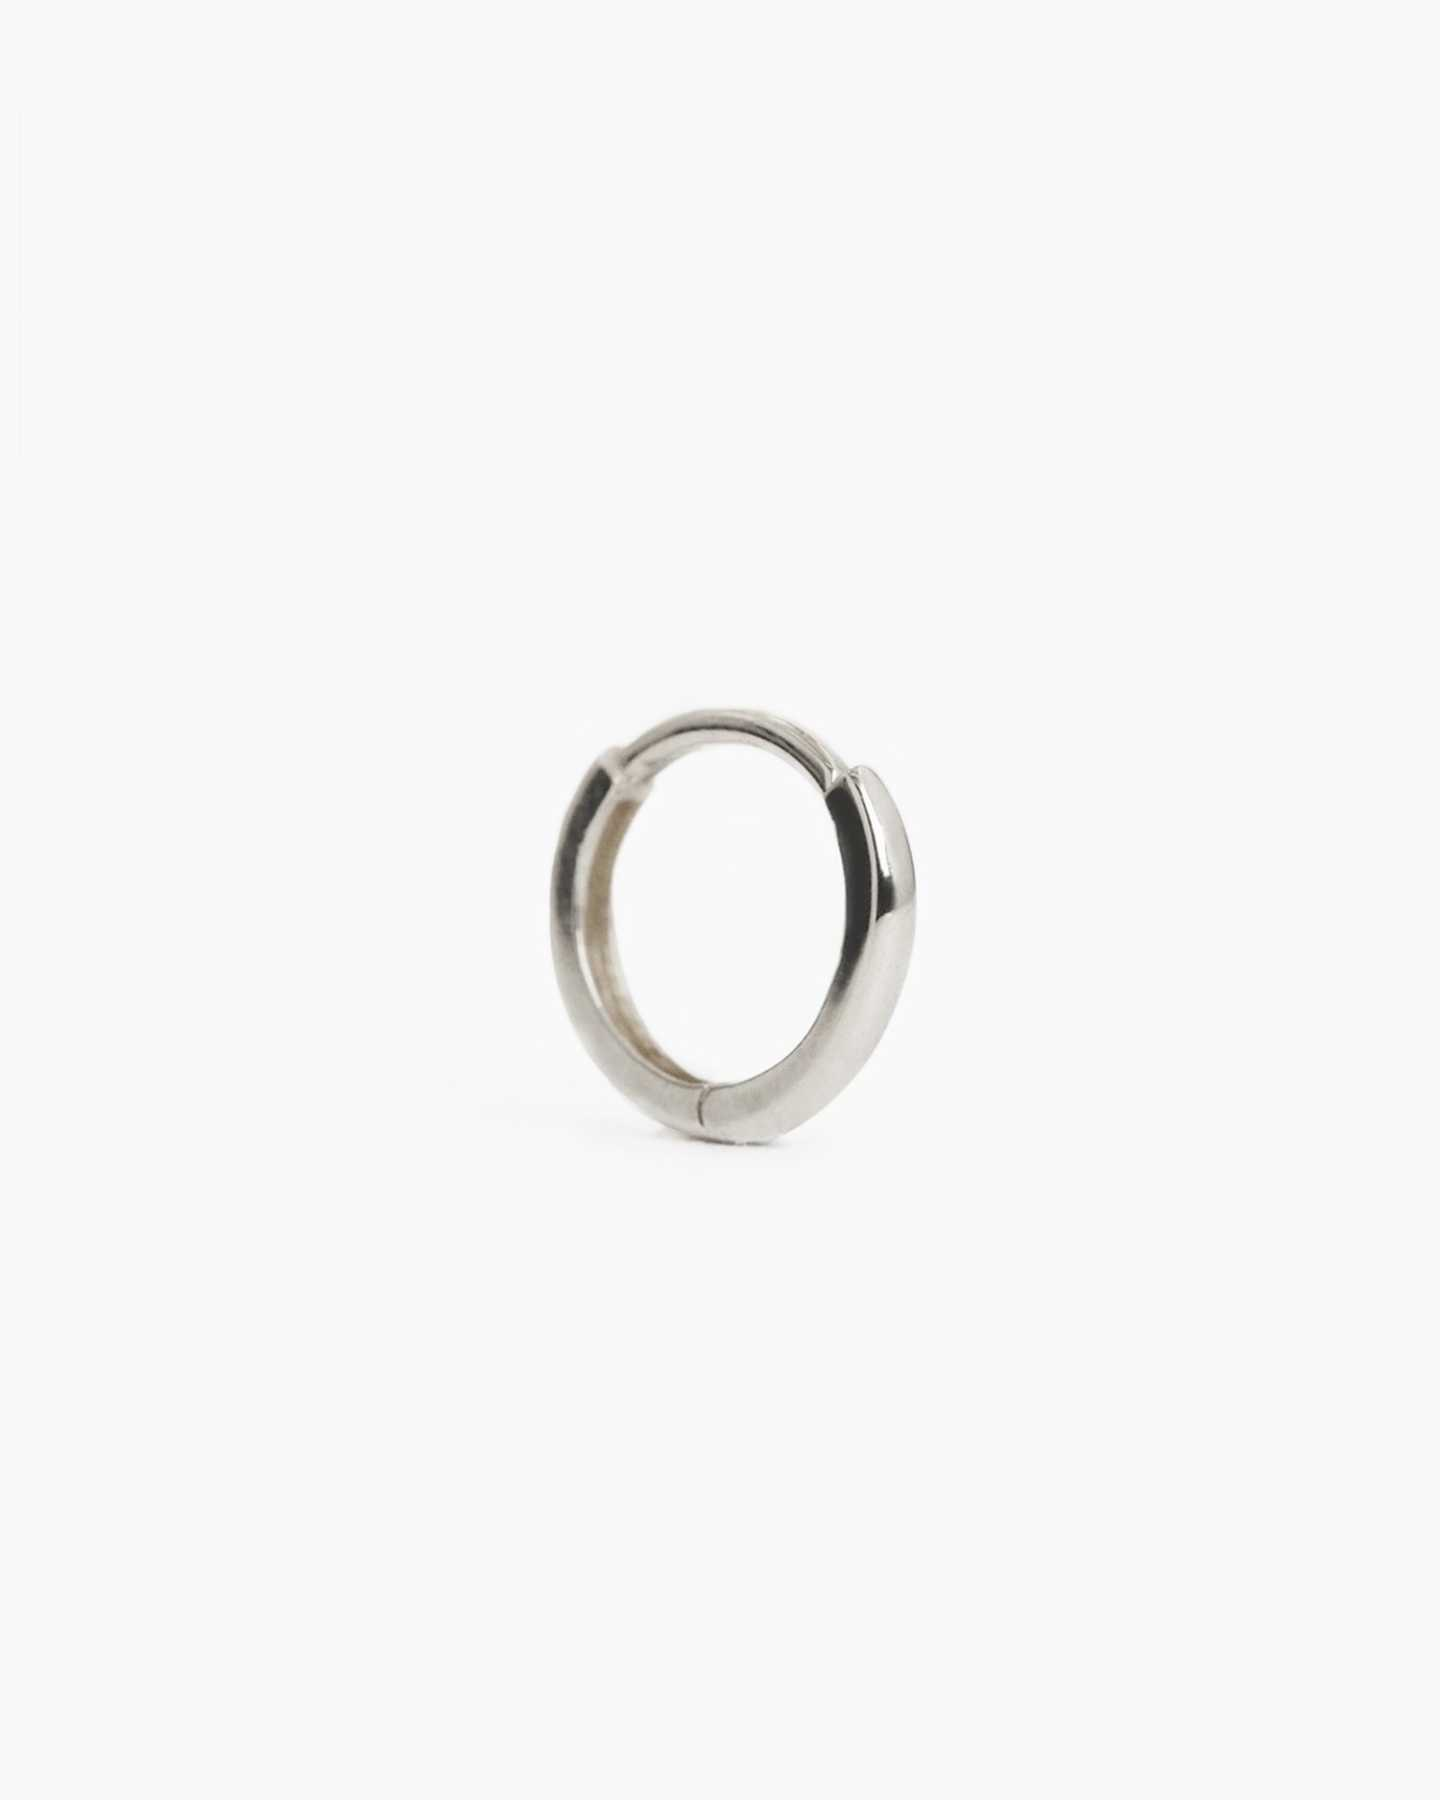 14k Gold Solo Mini Hoop - White Gold - 0